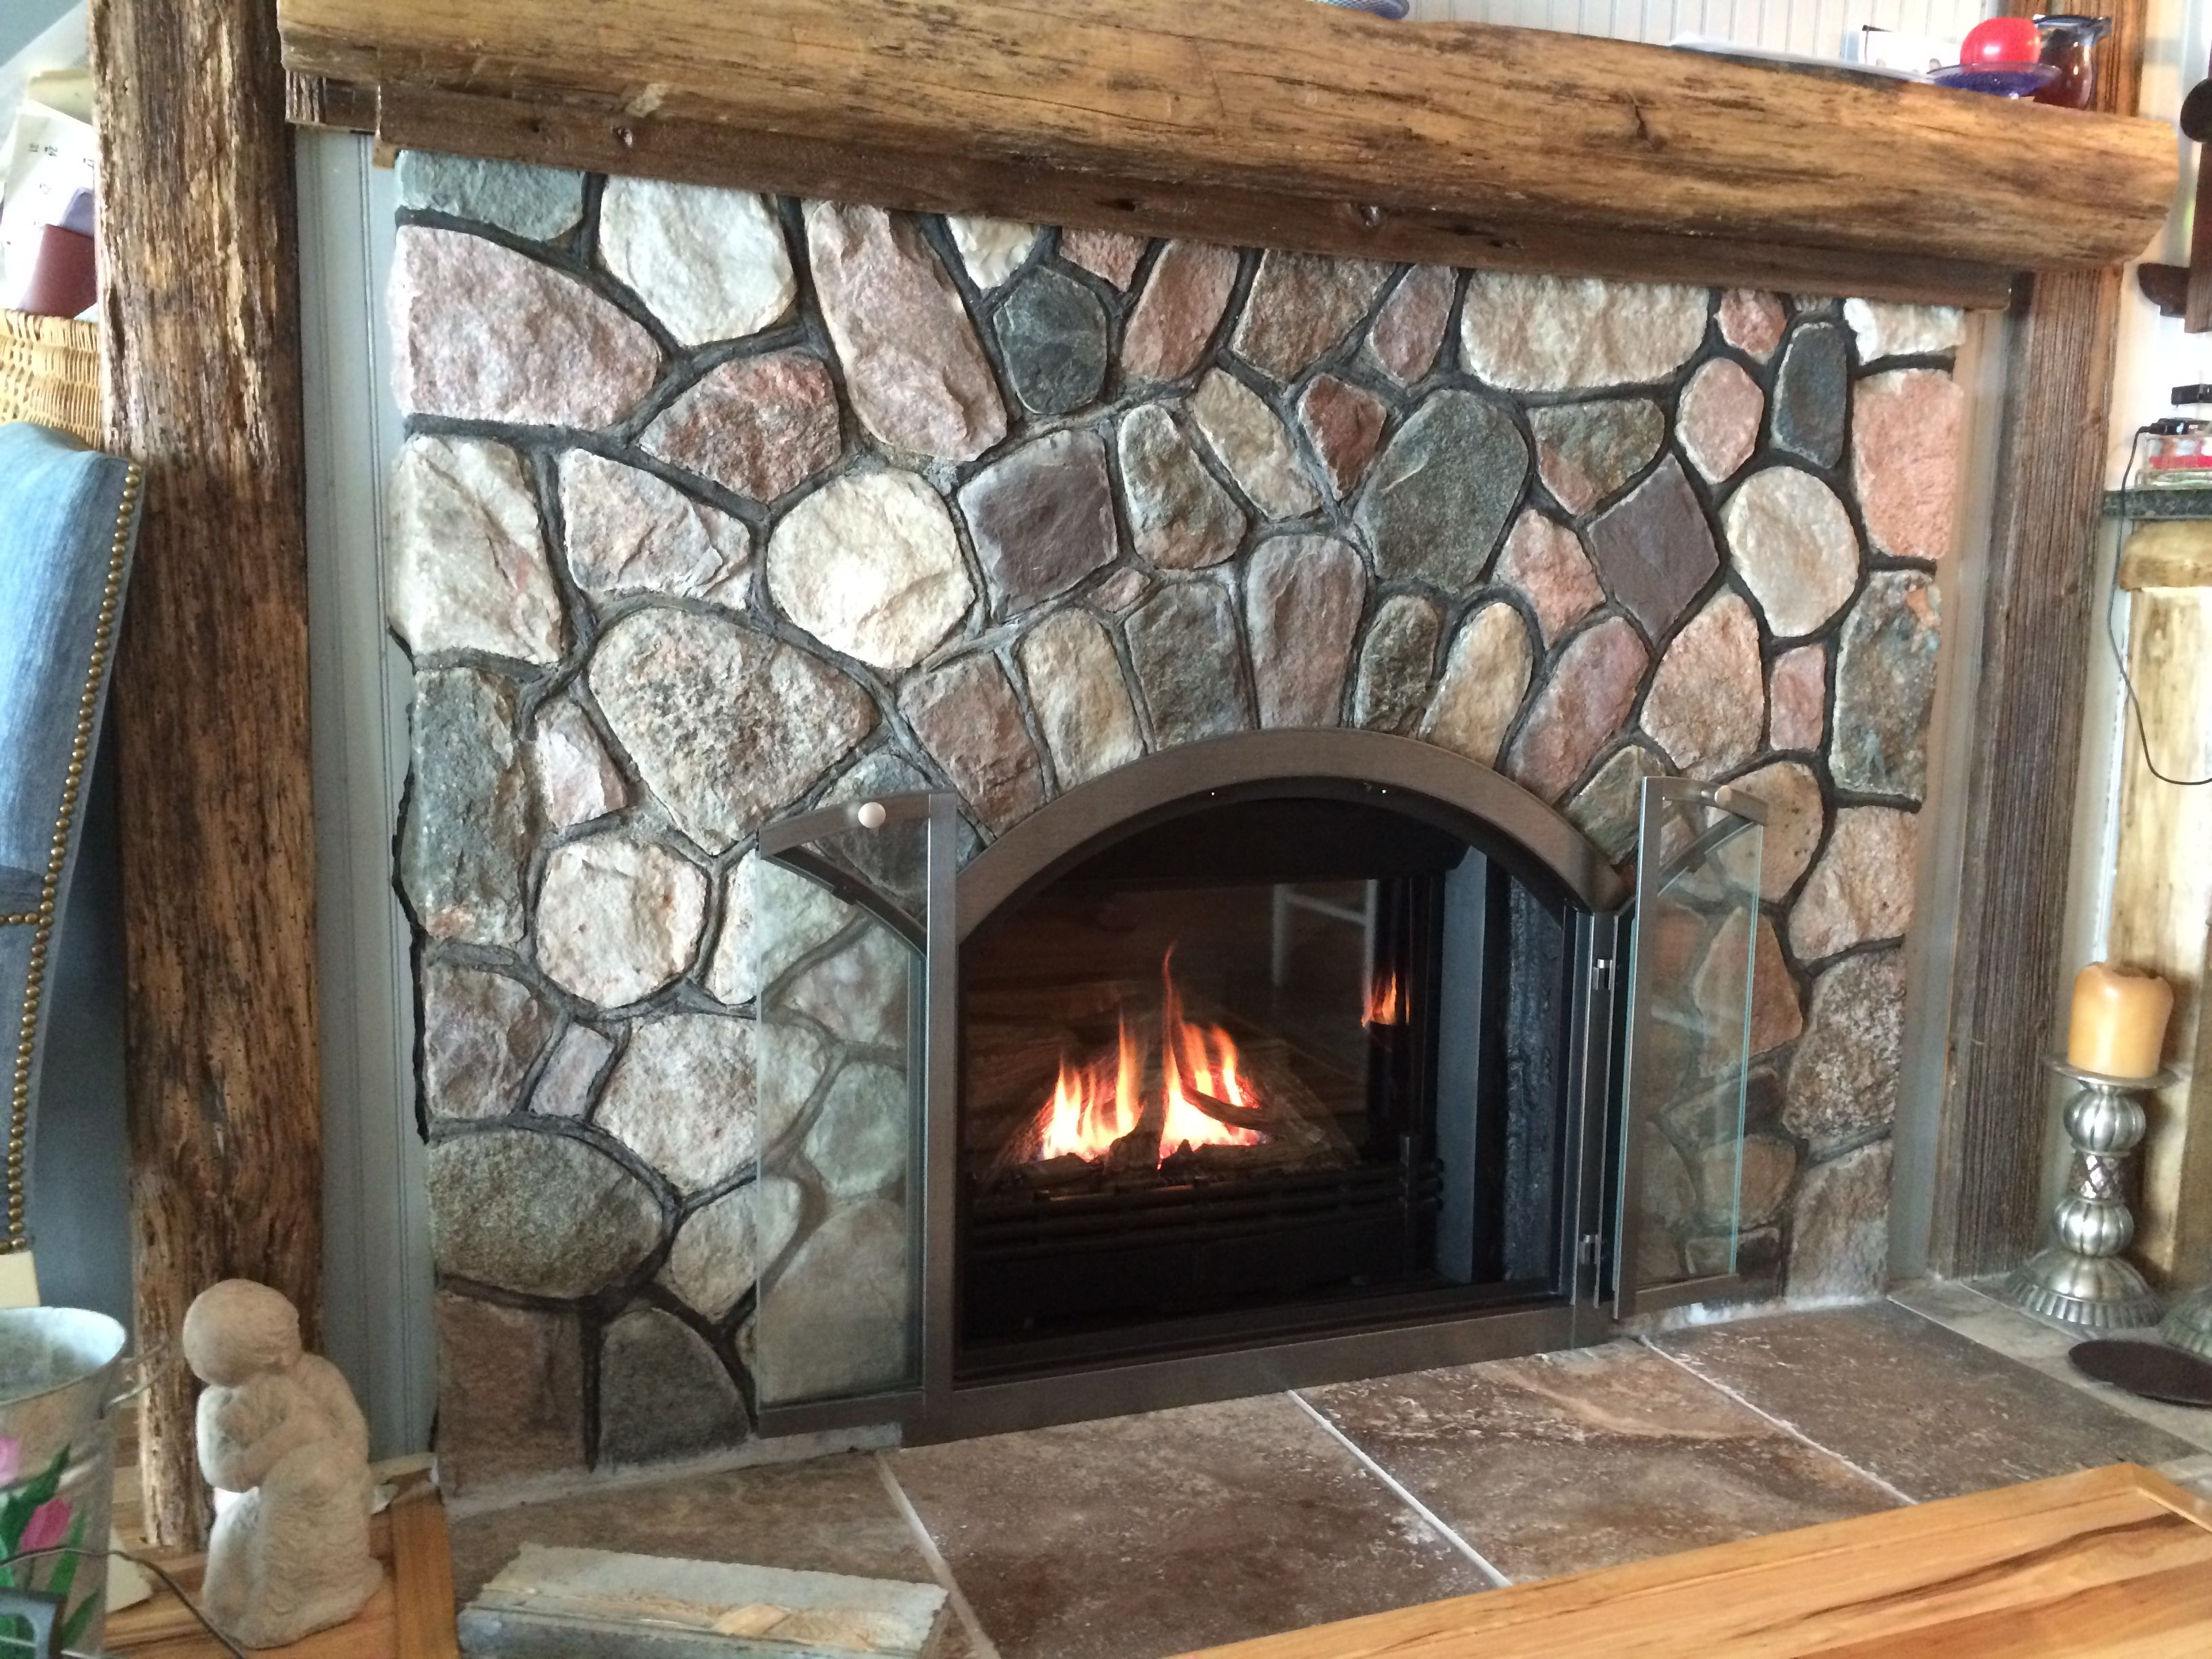 Valor G3 739jln Gas Insert In Arched Masonry Fireplace With Custom Glass Doors Valor Radiant